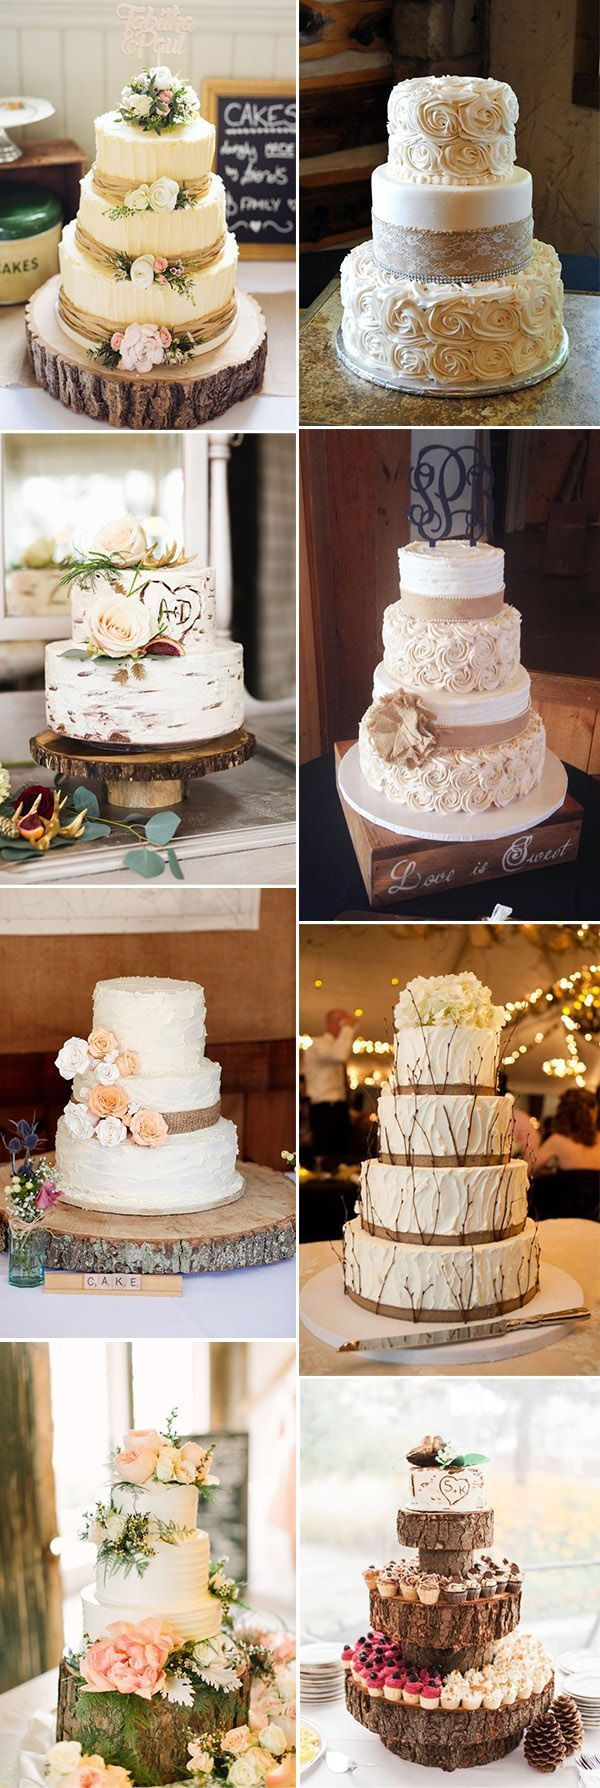 Wedding decorations hd  the best rustic wedding cake ideas  Backyard Wedding  Pinterest